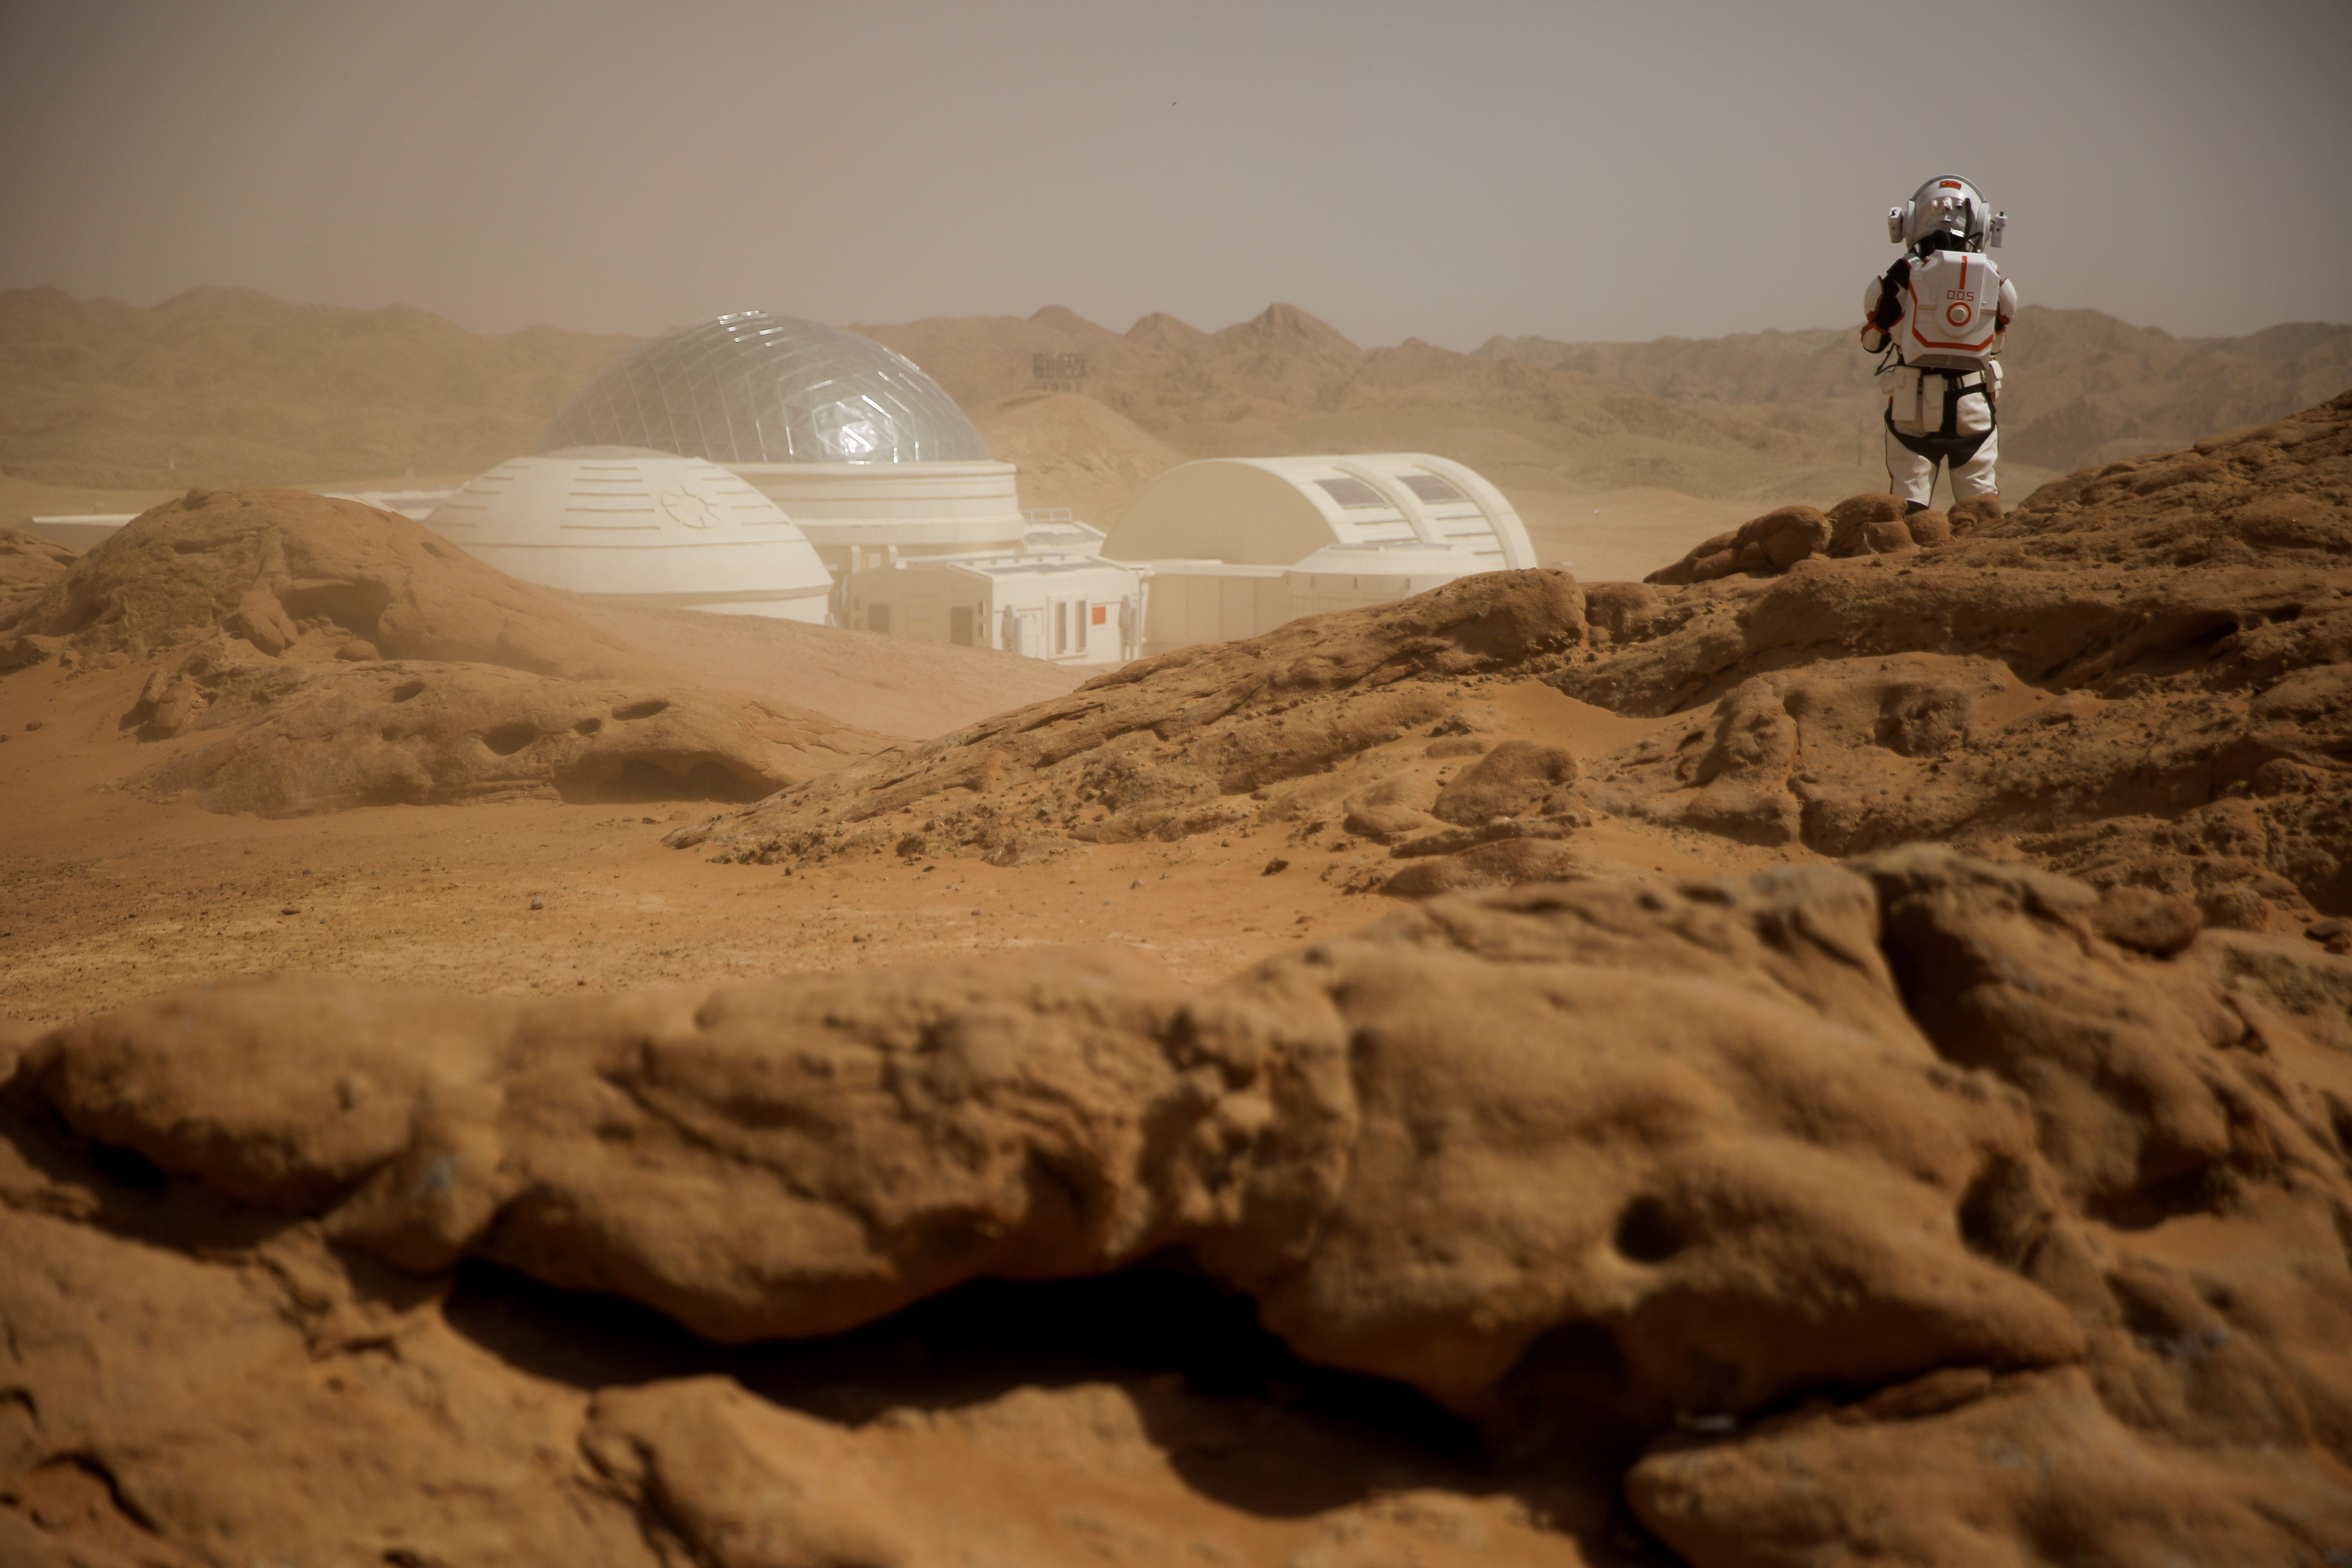 Sand whipped up by wind shrouds the C-Space Project Mars simulation base as a staff member wearing a mock space suit poses in the Gobi Desert outside Jinchang, Gansu Province, China, April 18, 2019.  REUTERS/Thomas Peter     TPX IMAGES OF THE DAY